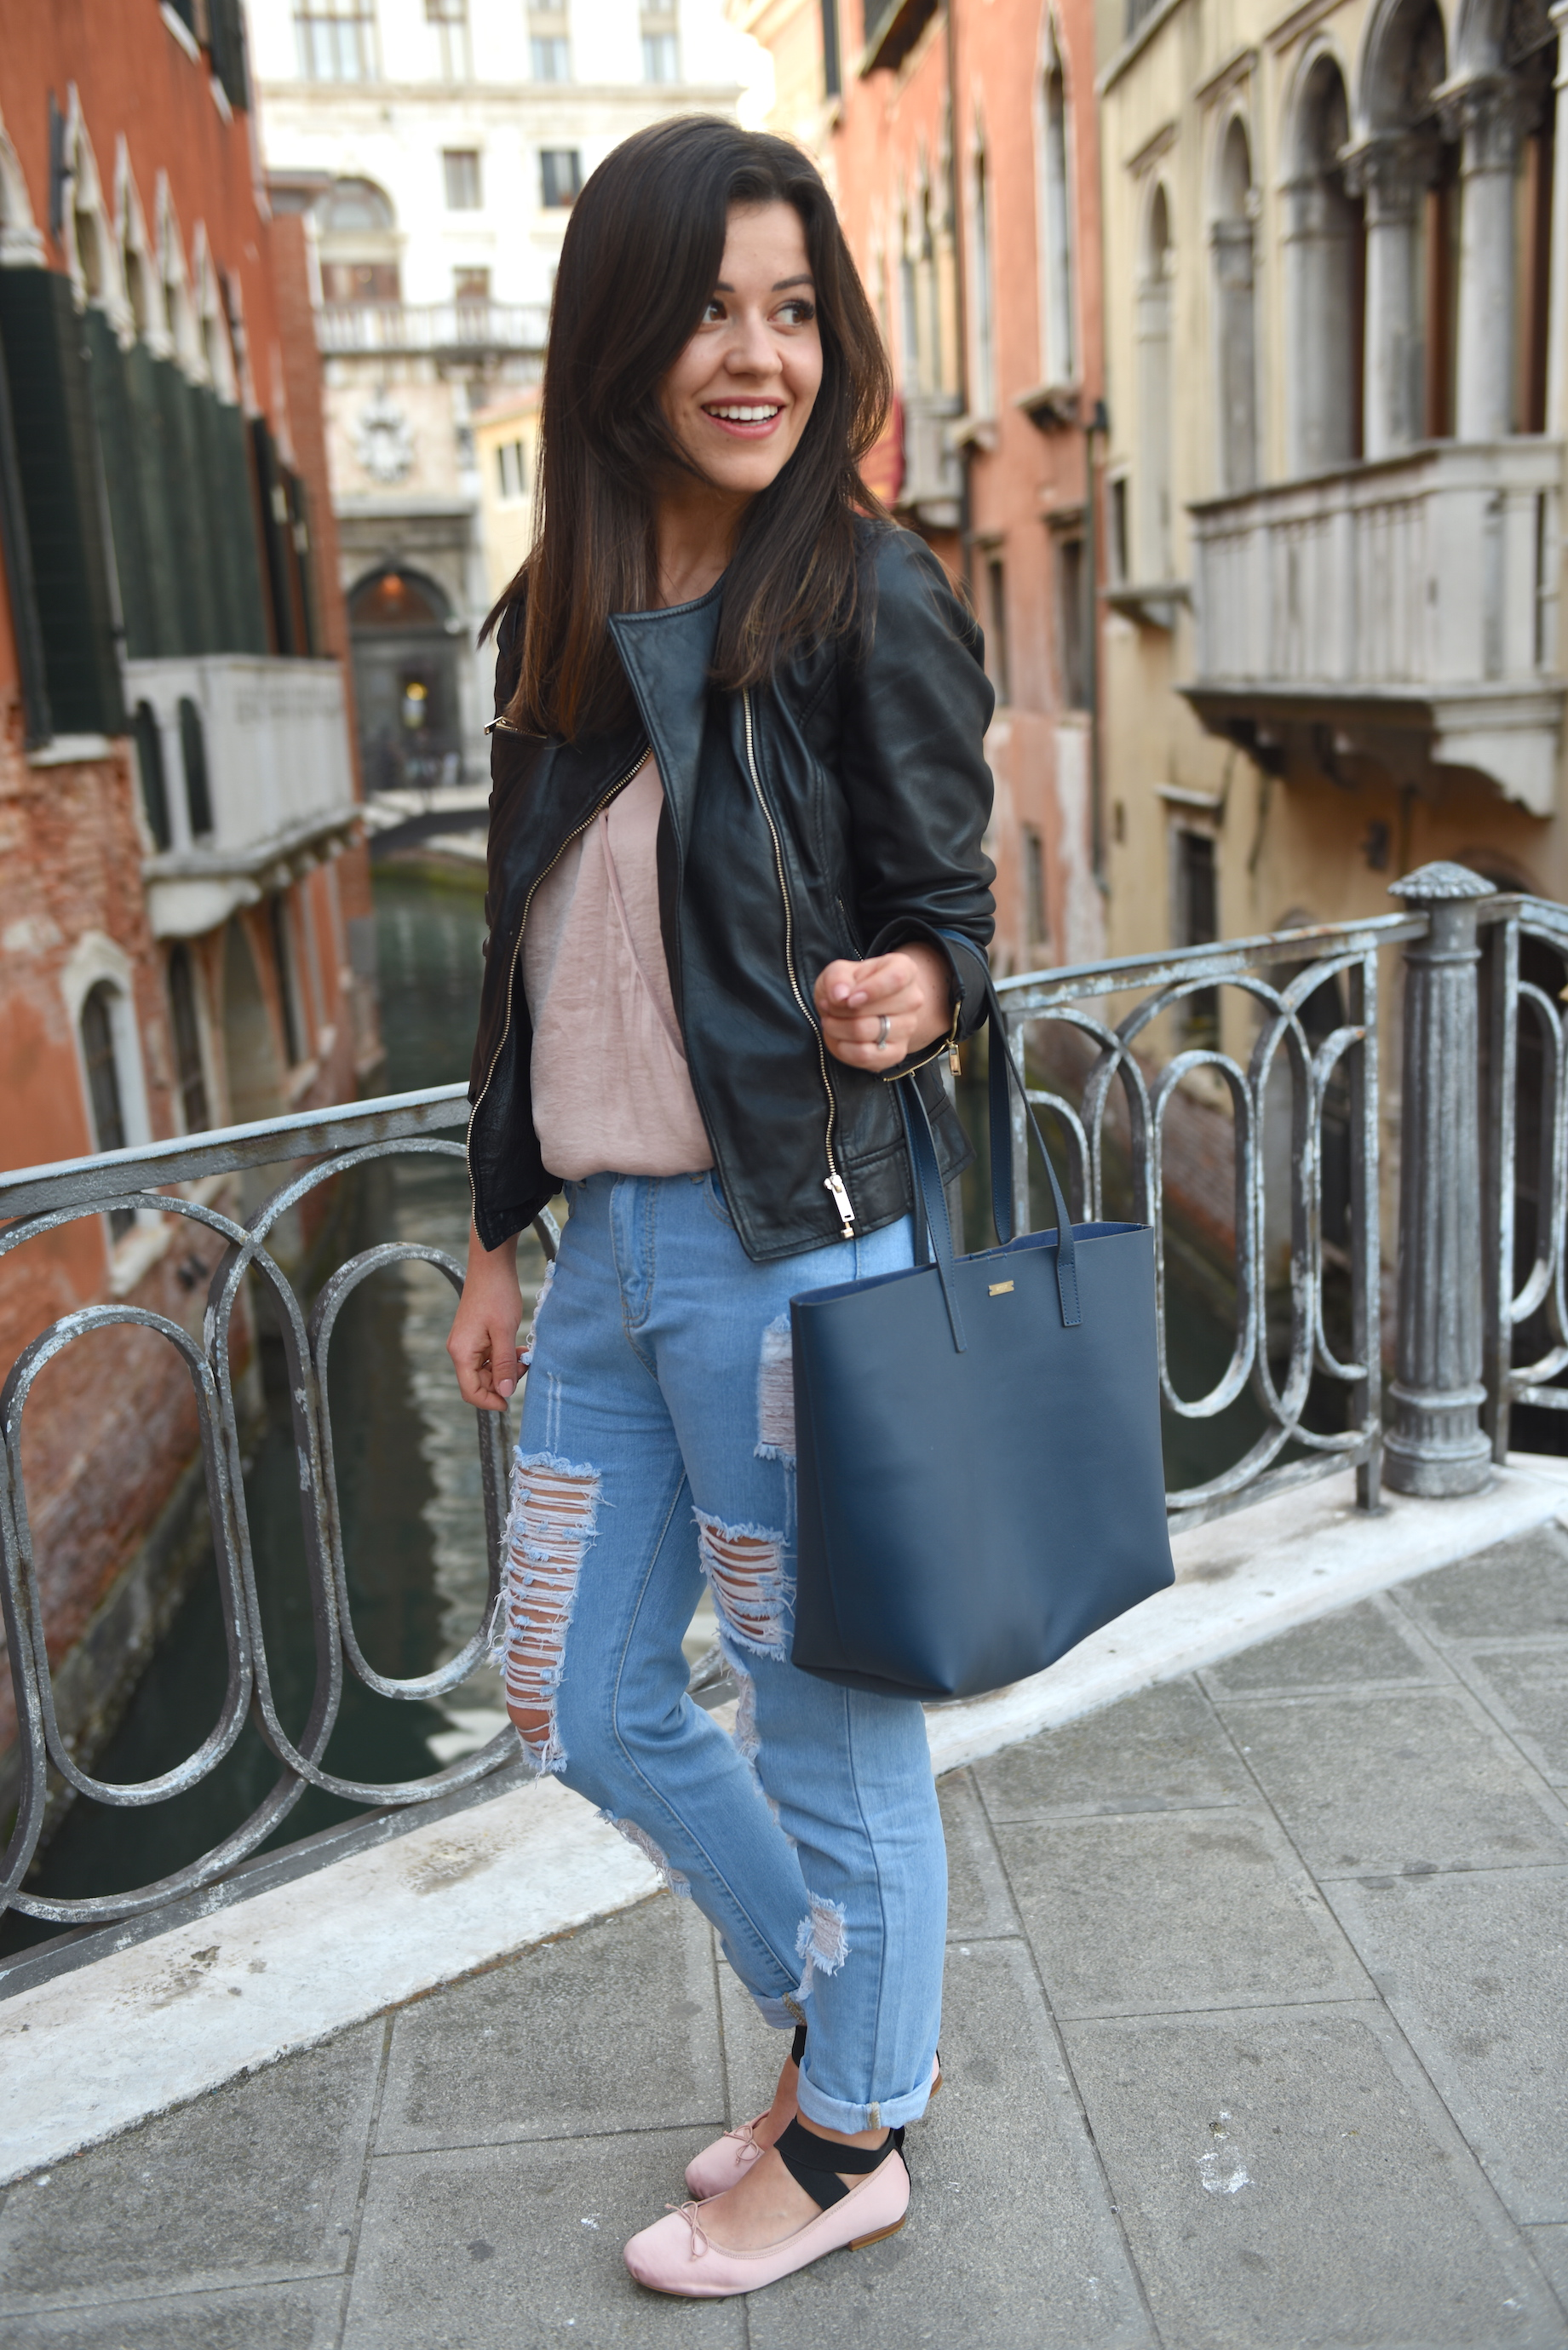 fashionelka outfit